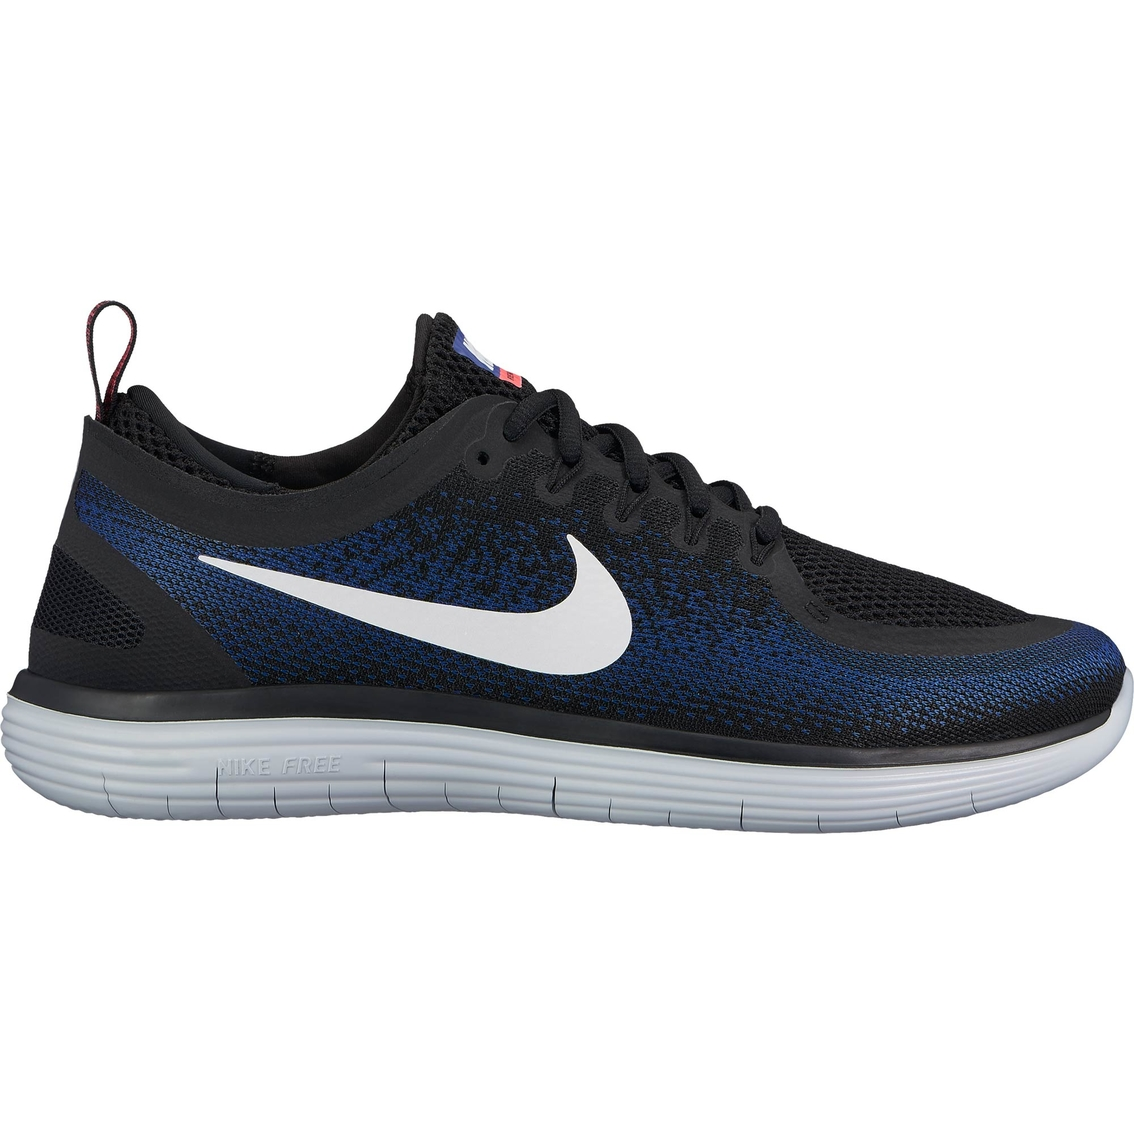 7c36002aba981 Nike Men s Free Rn Distance 2 Running Shoes